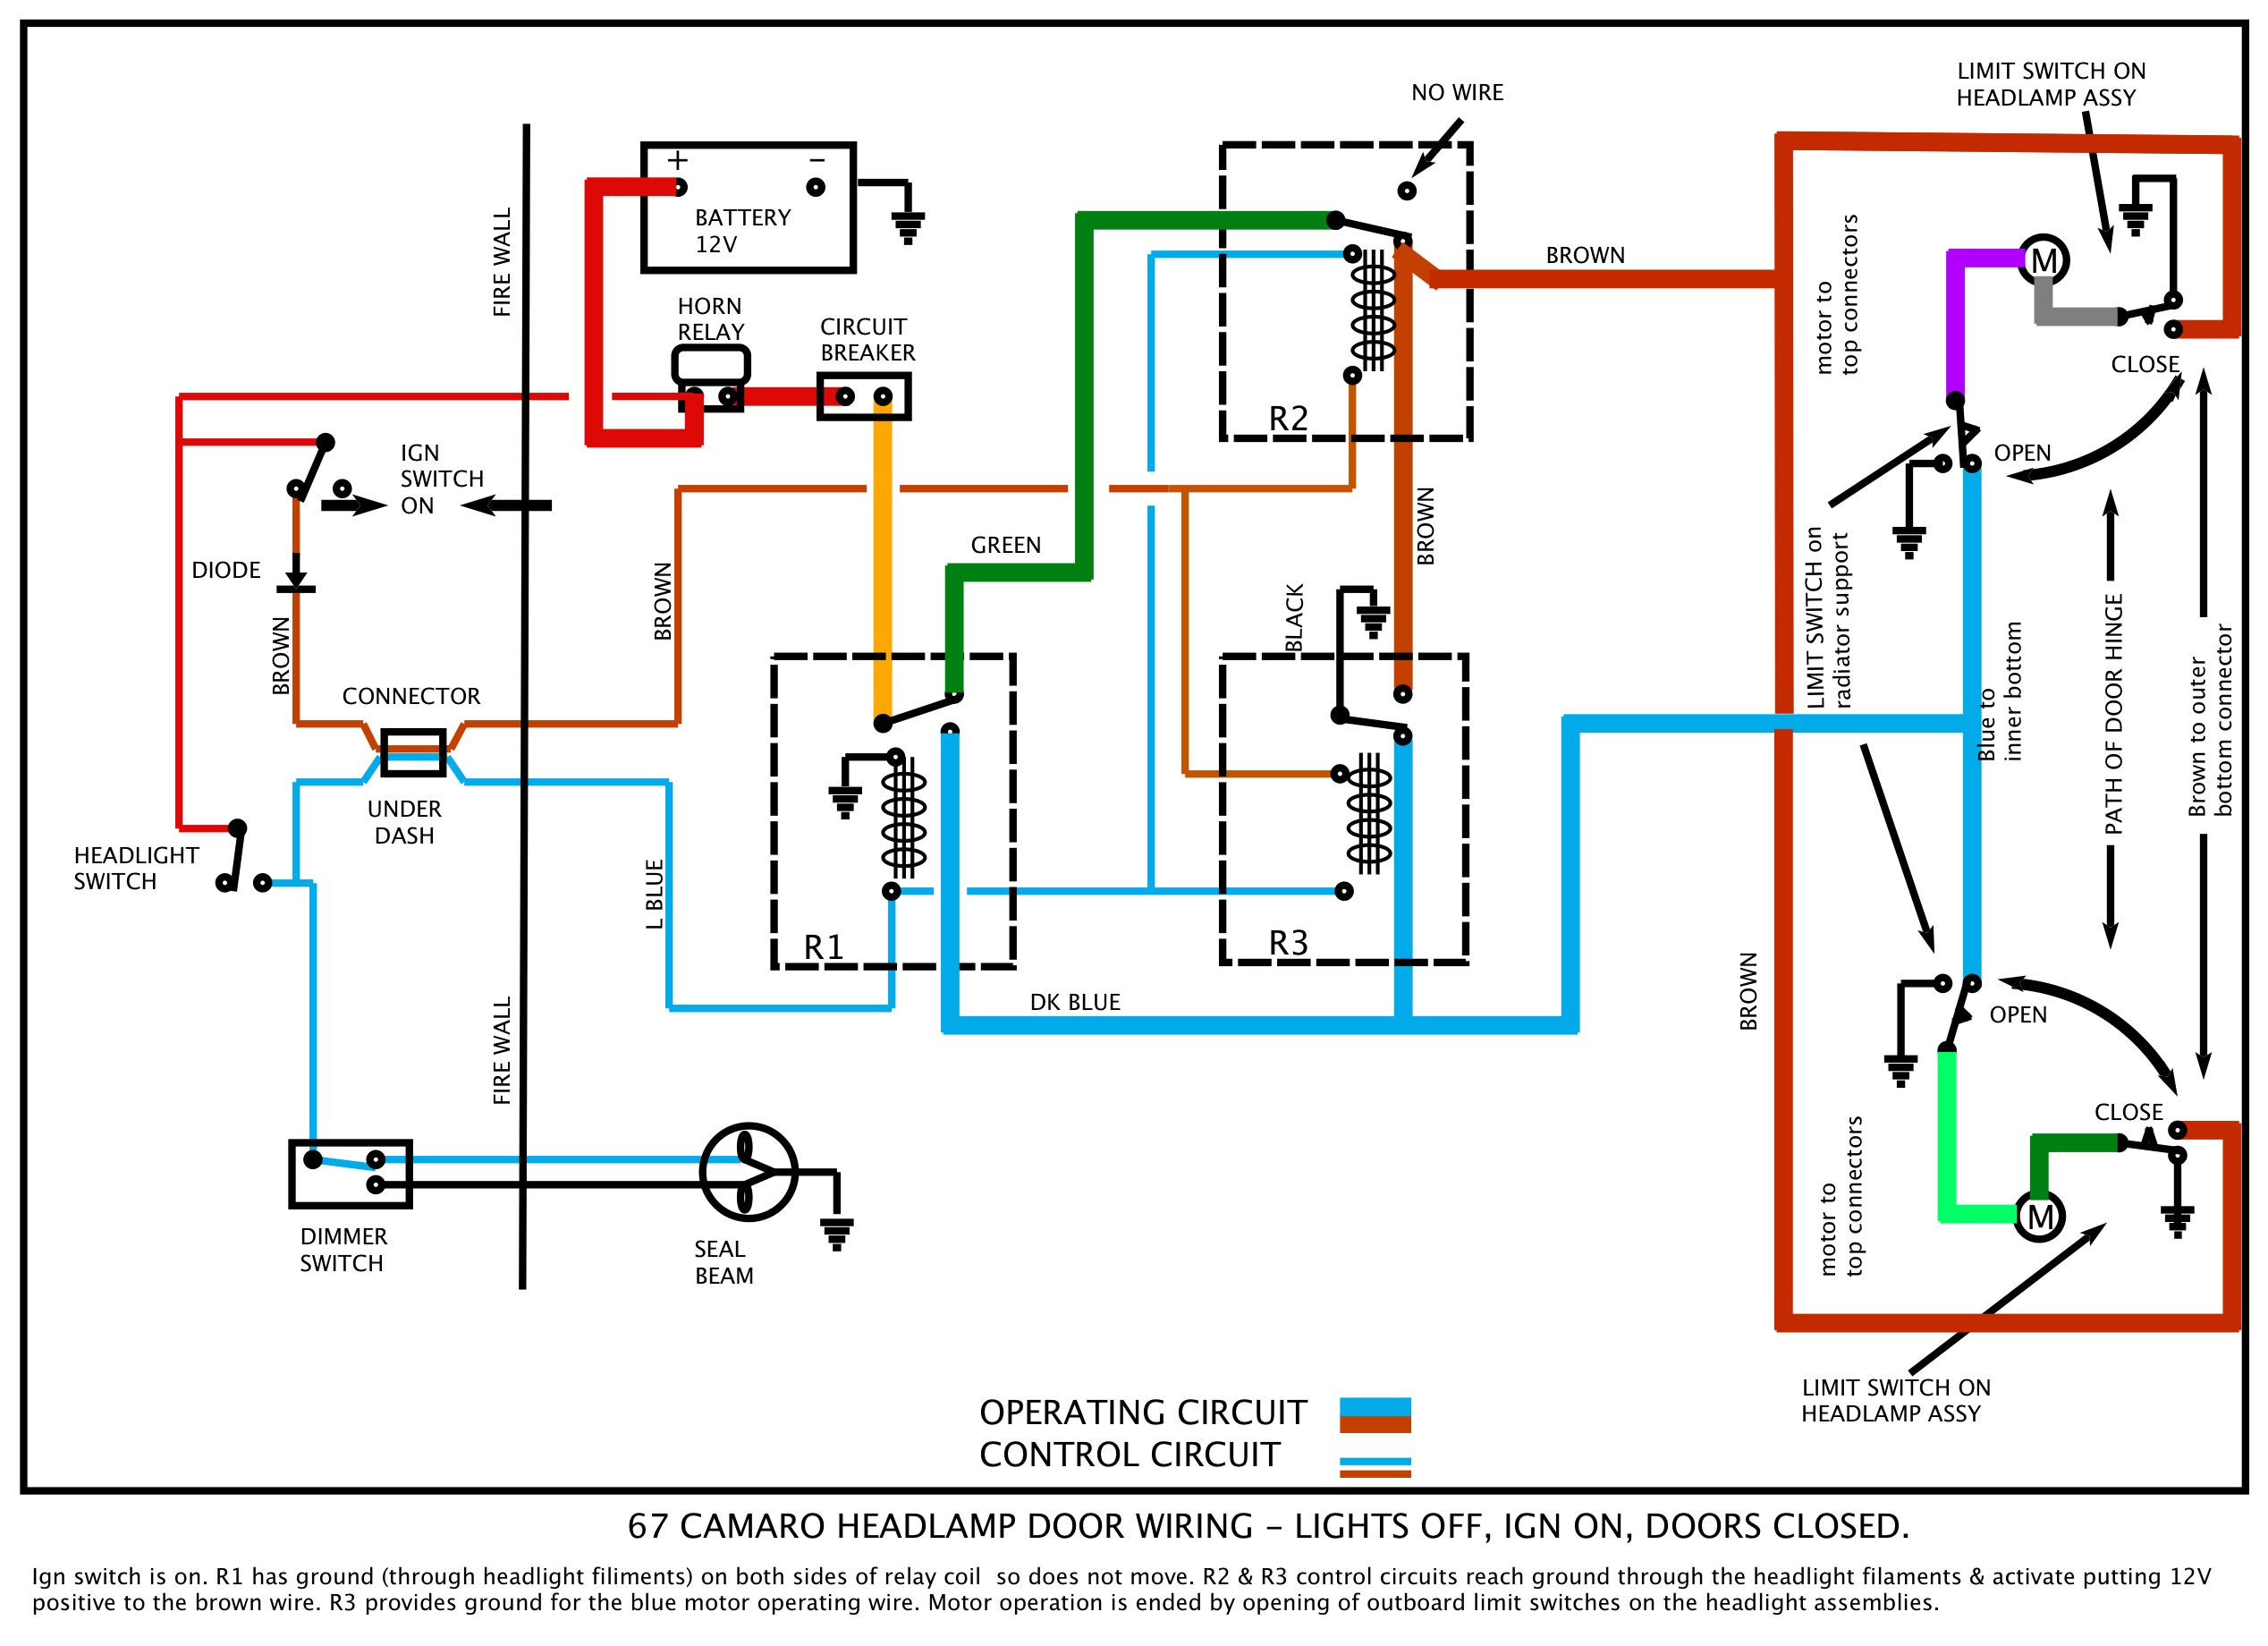 2002 camaro engine diagram wiring diagram img 2002 Camaro Ss Exhaust System Diagram Wiring Schematic 2002 camaro ss exhaust system diagram